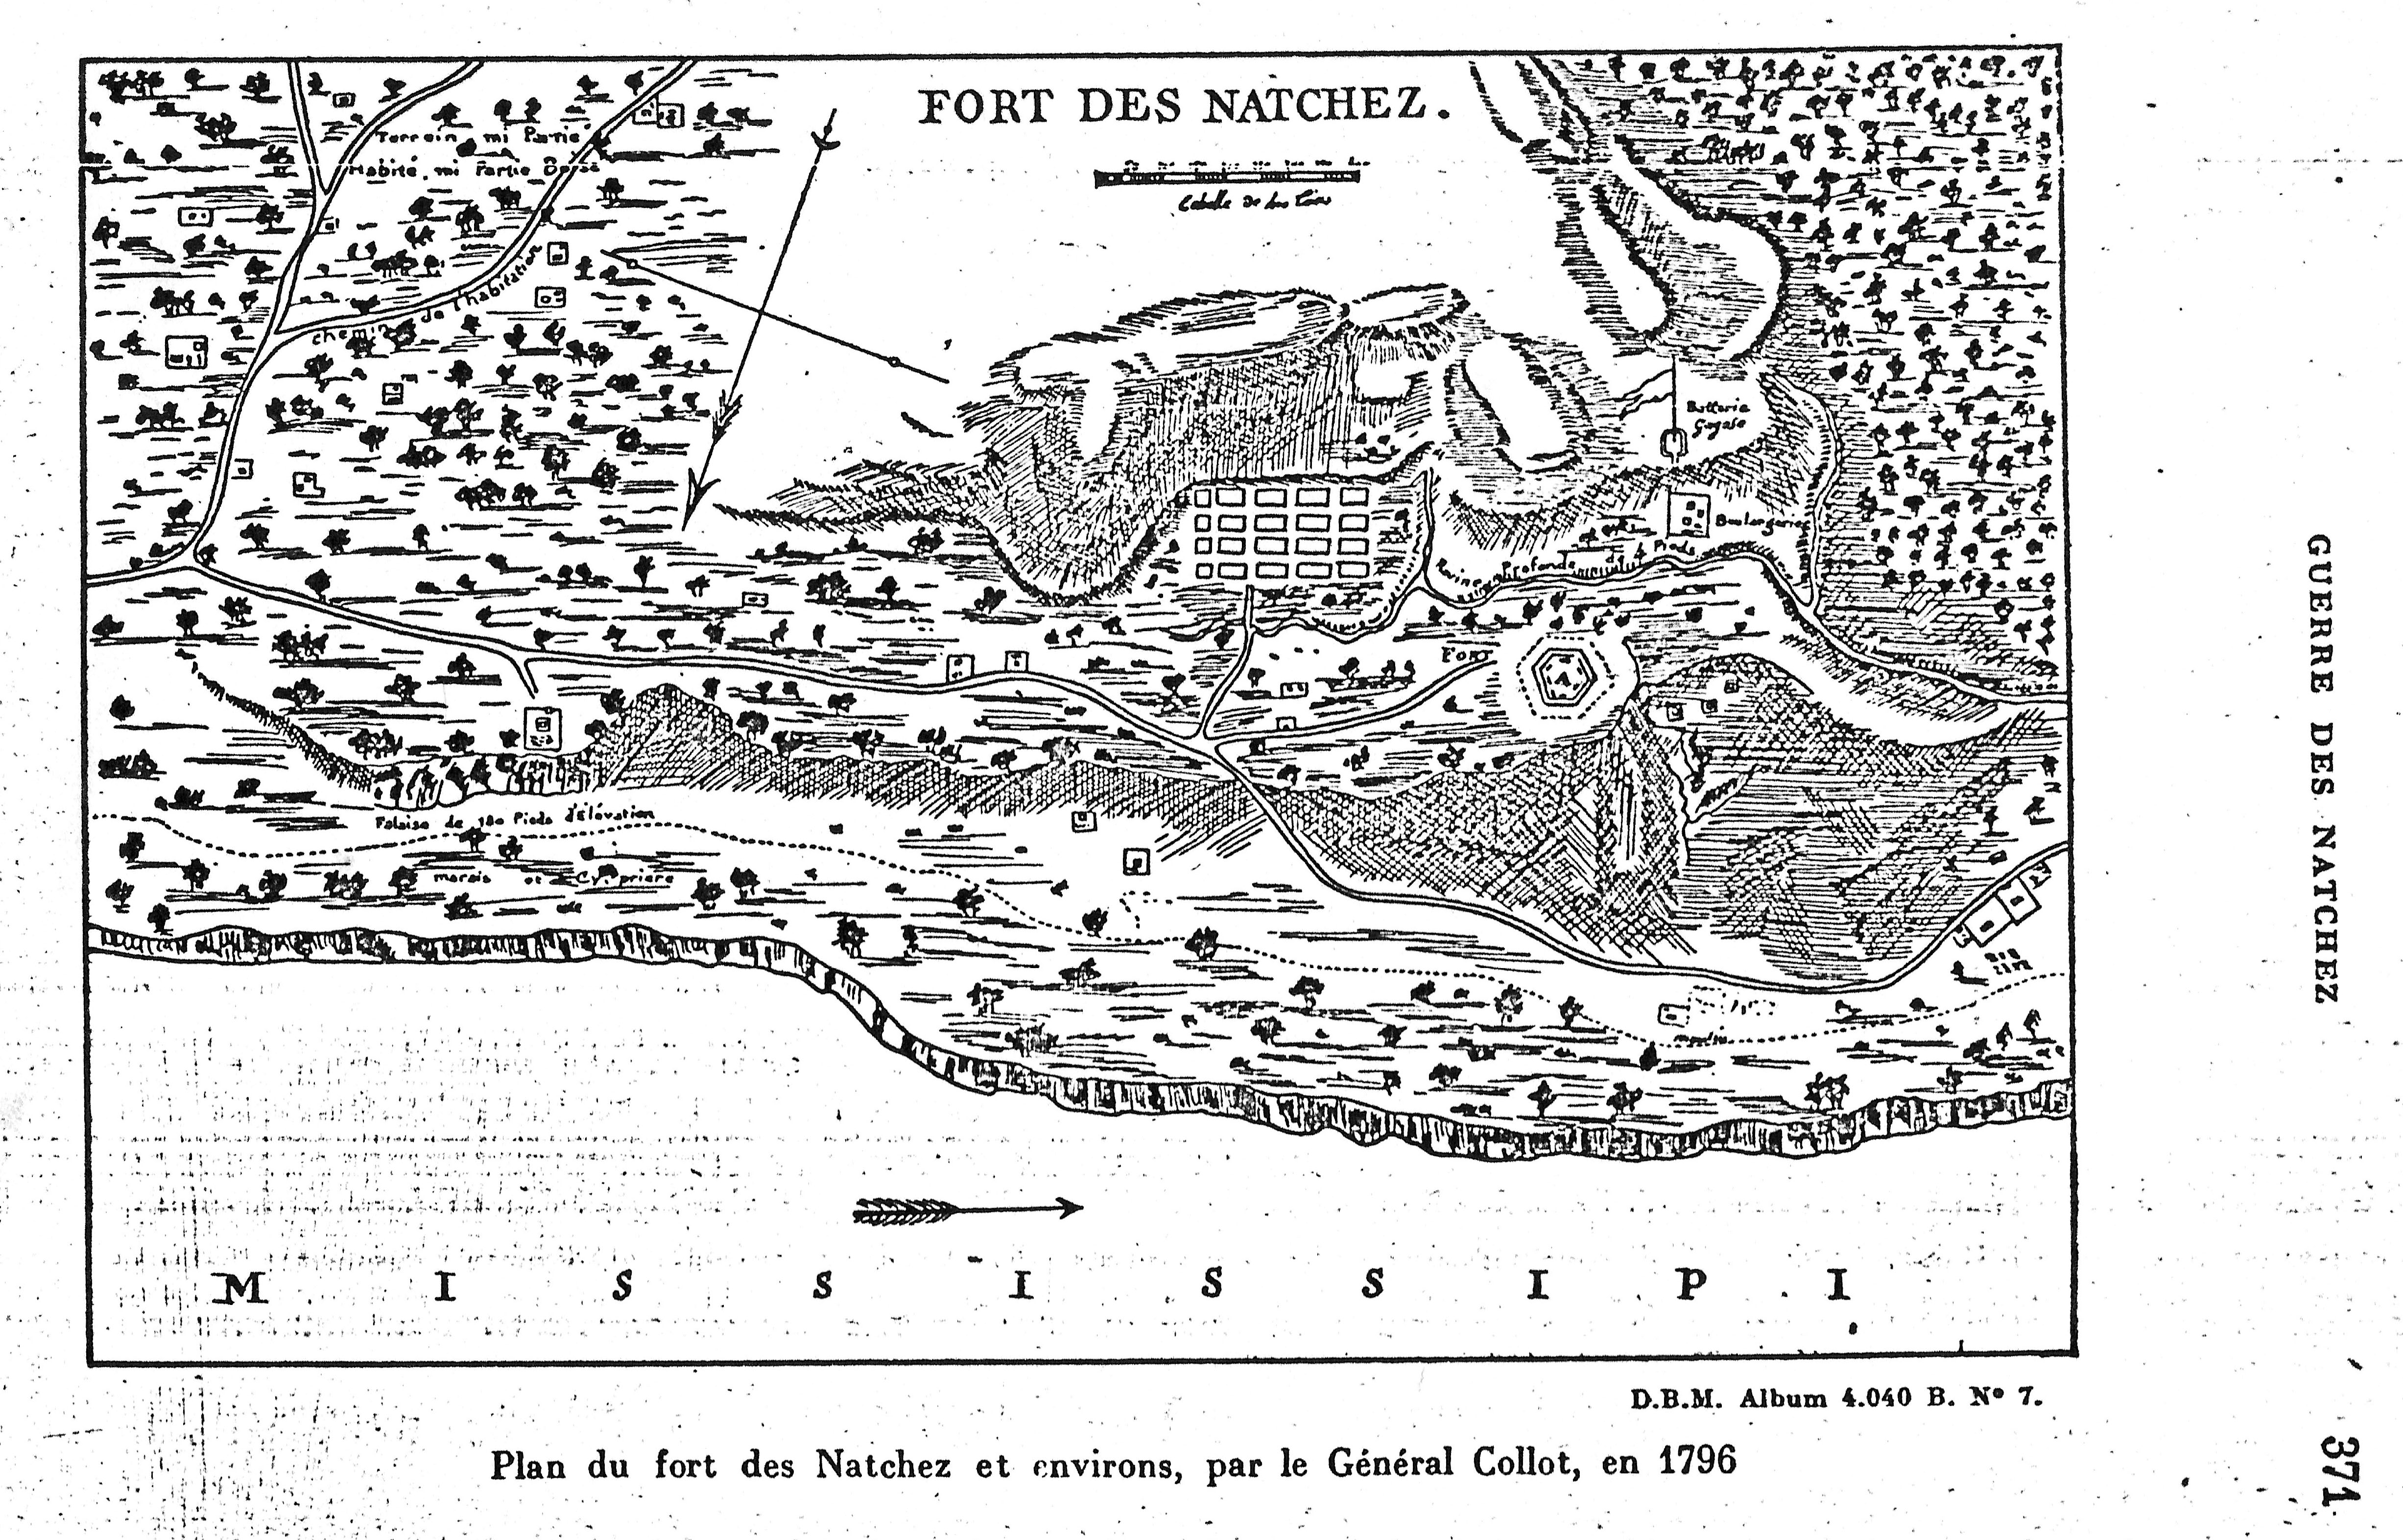 Early Maps Of Colonial Natchez